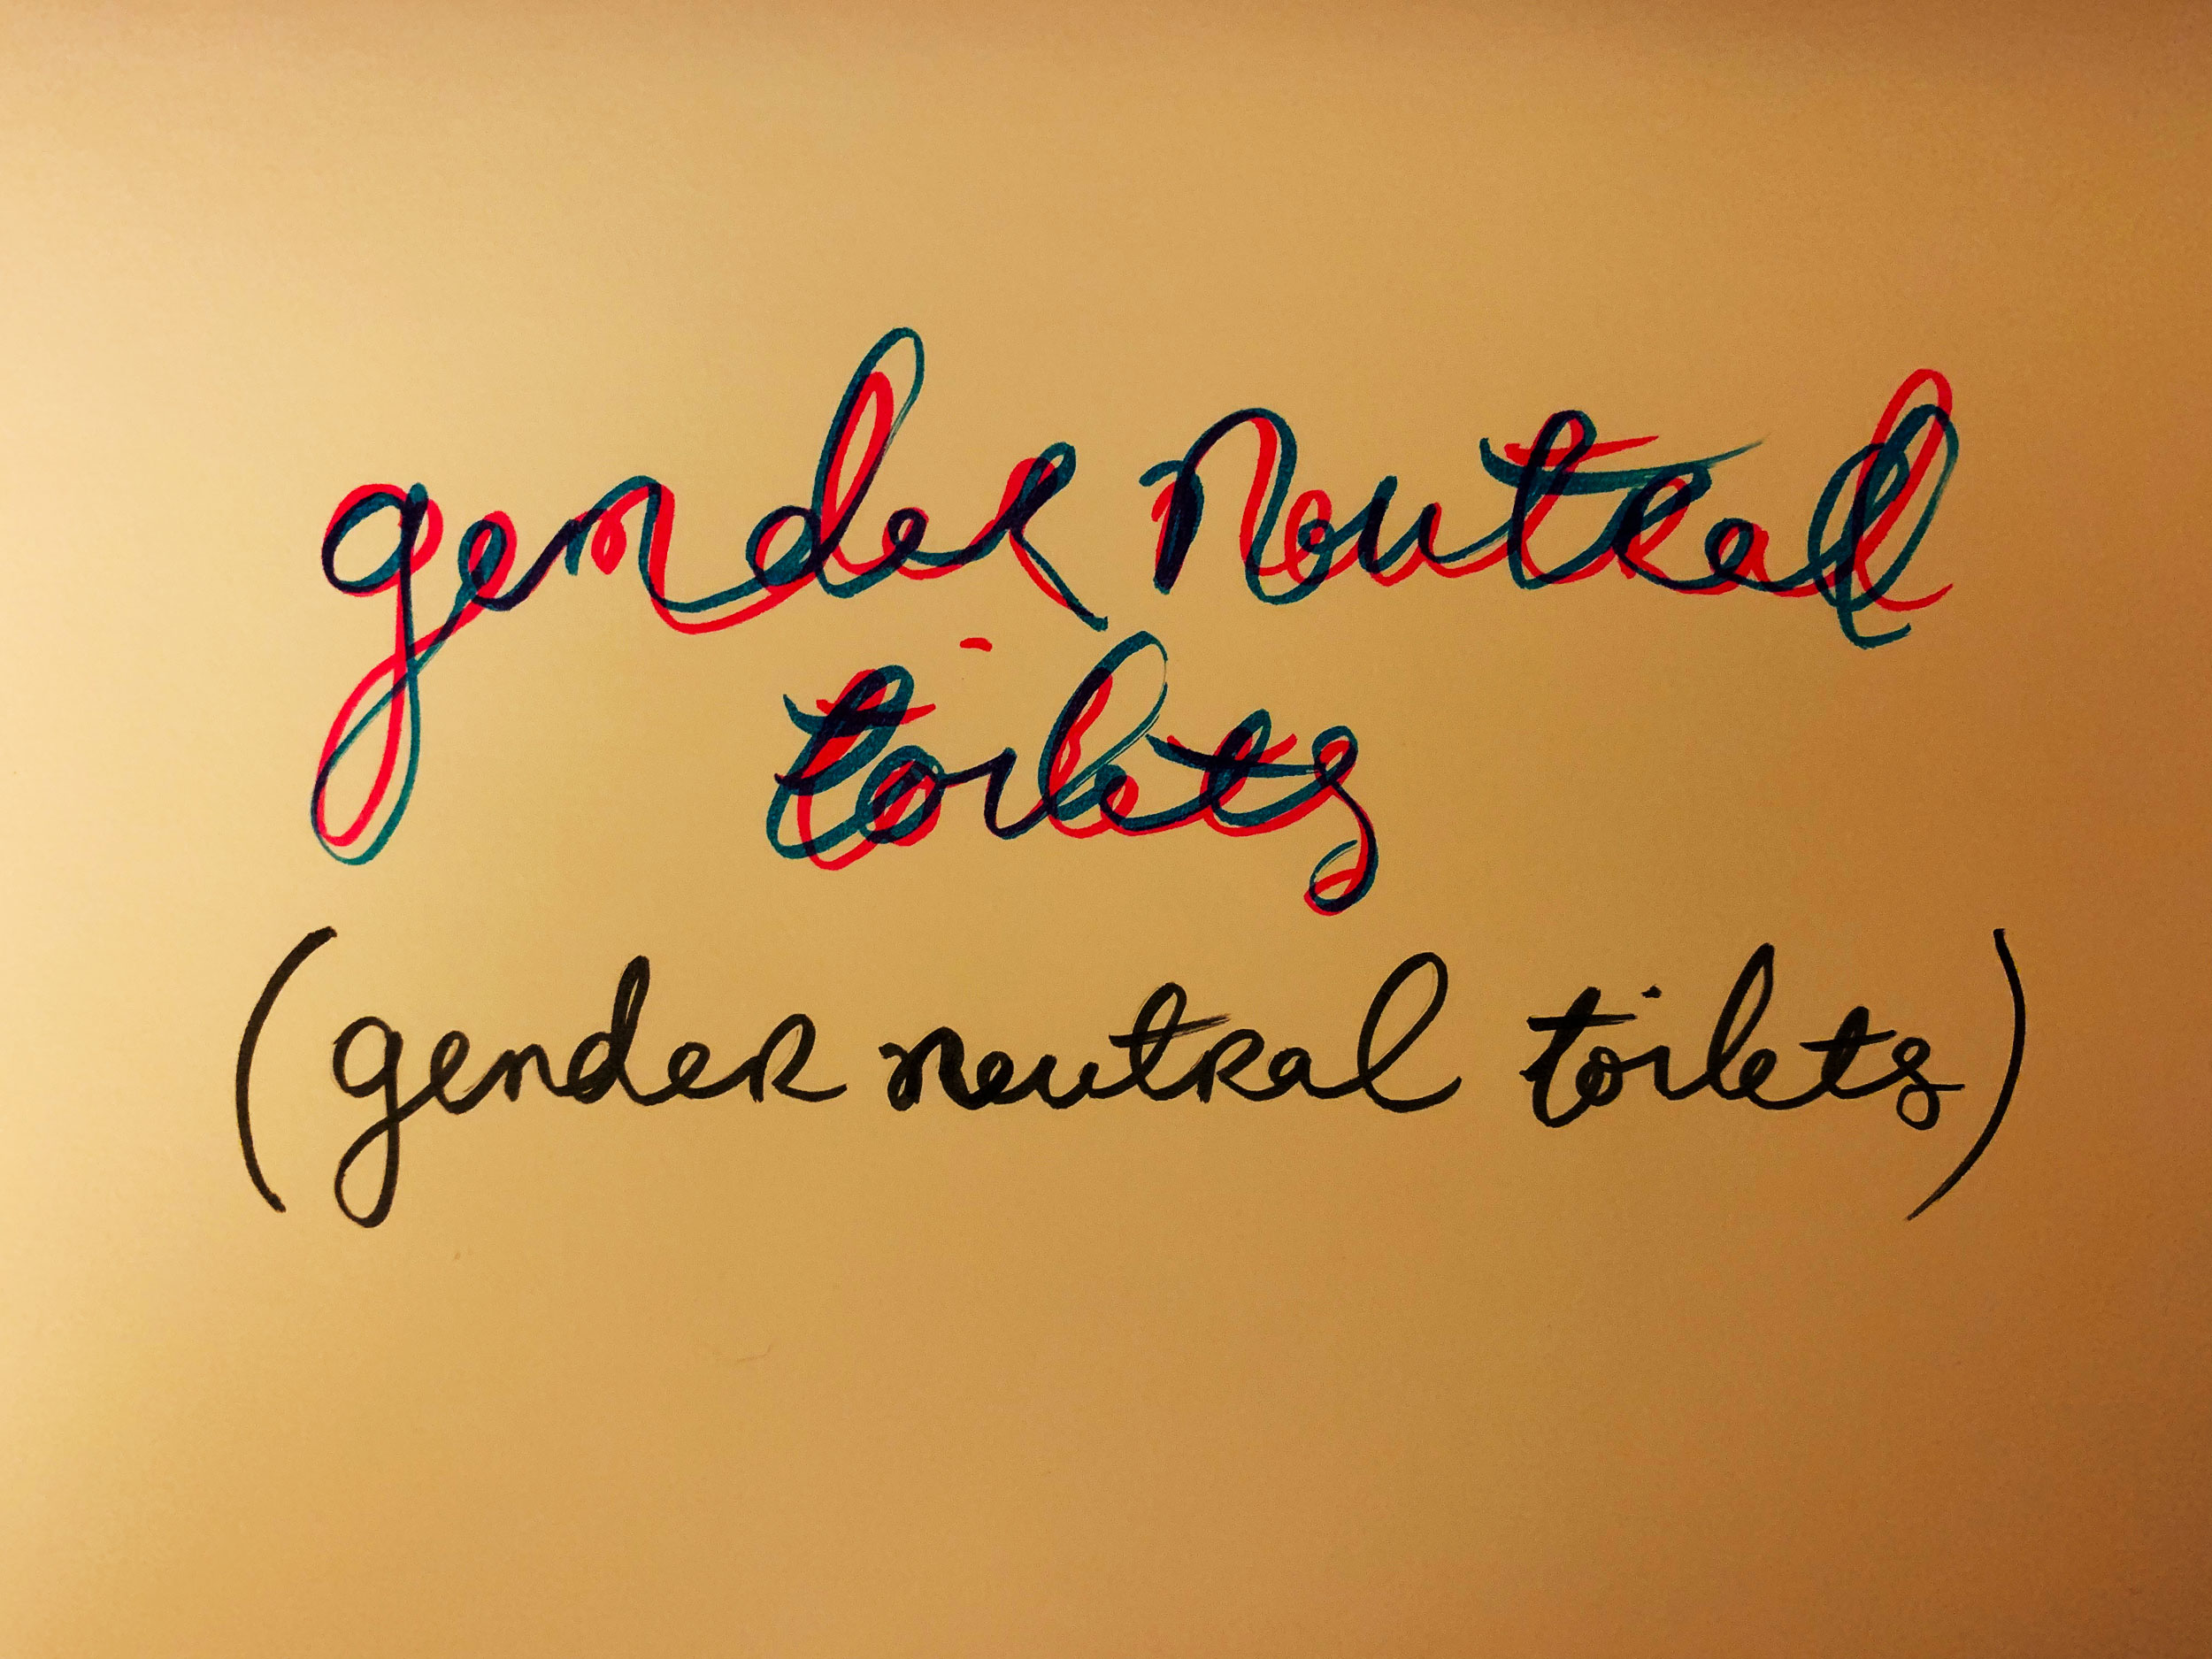 Gender neutral toilets. Drawing Luke Hockley.